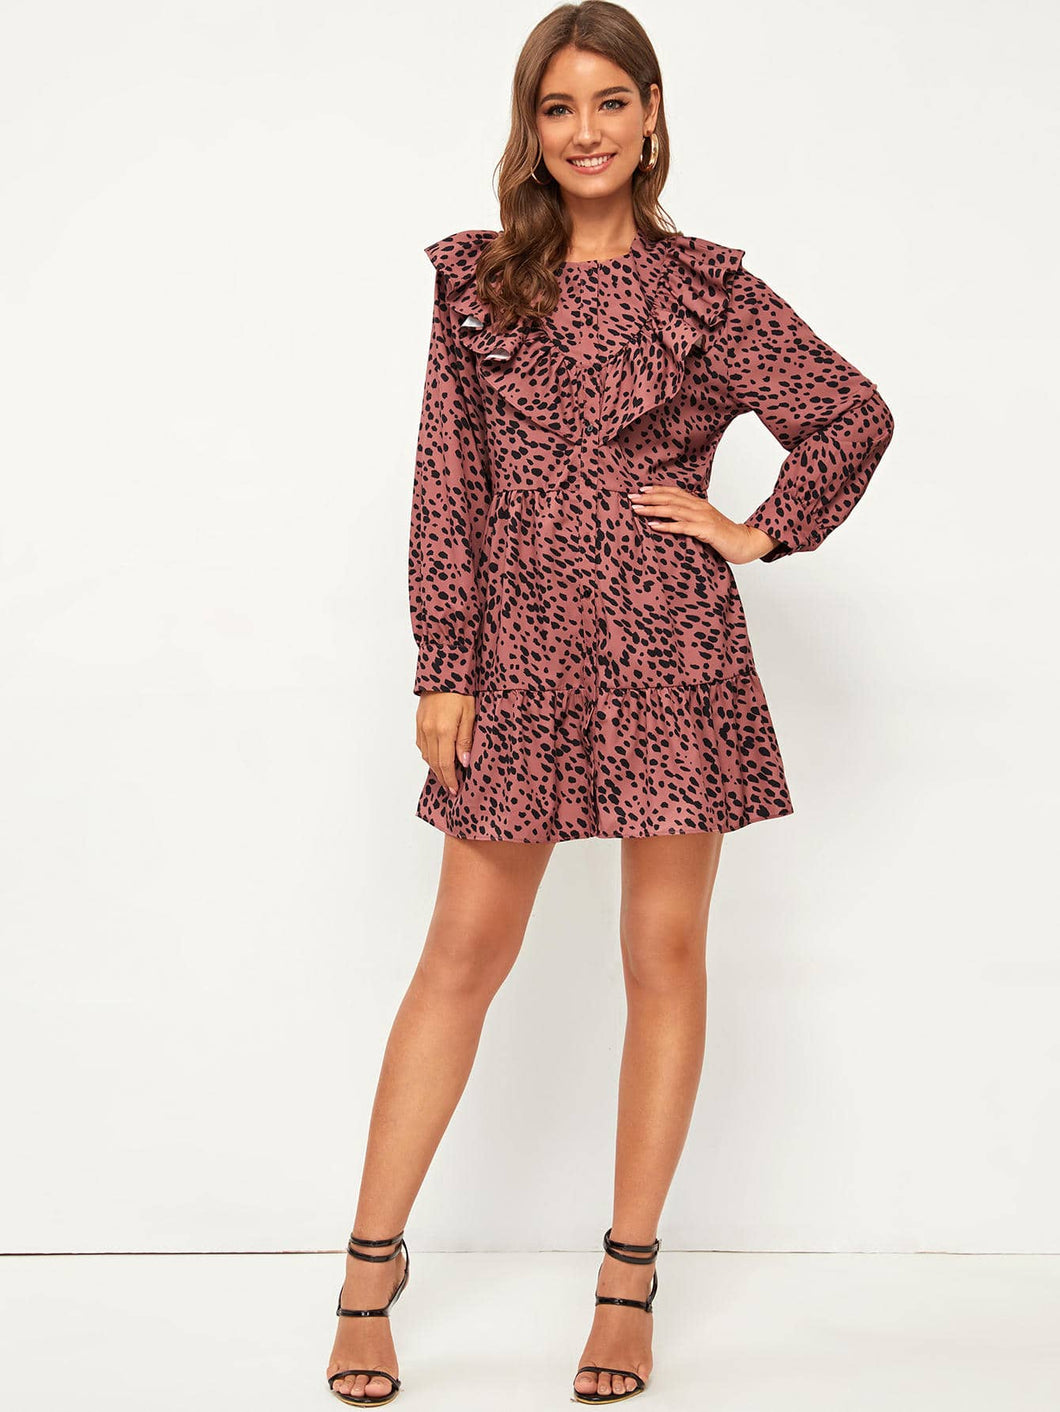 Dalmatian Print Ruffle Trim Button Up Smock Dress